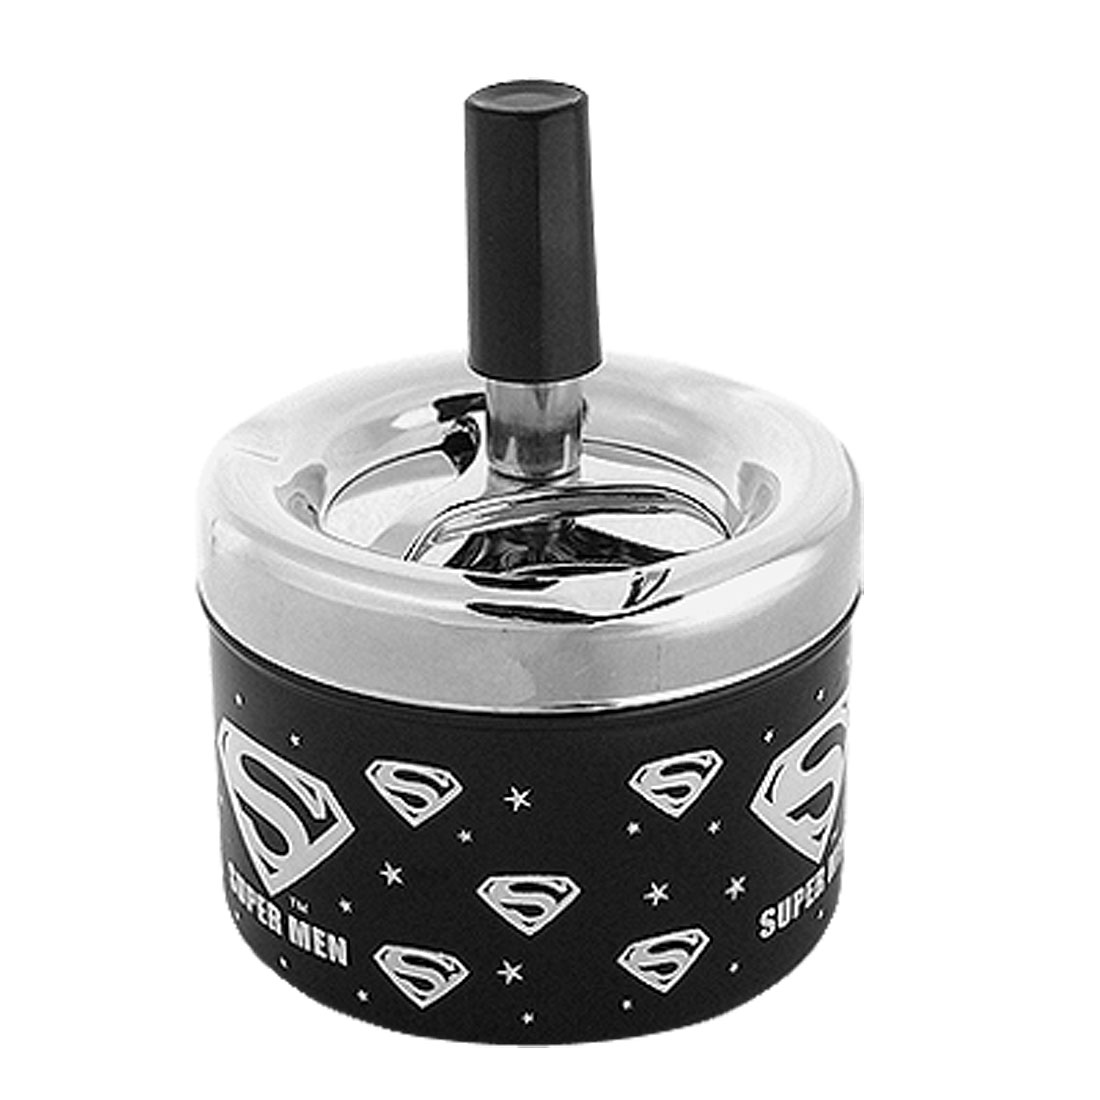 Push Down Spinning Metal Cigarette Cigar Ashtray Black